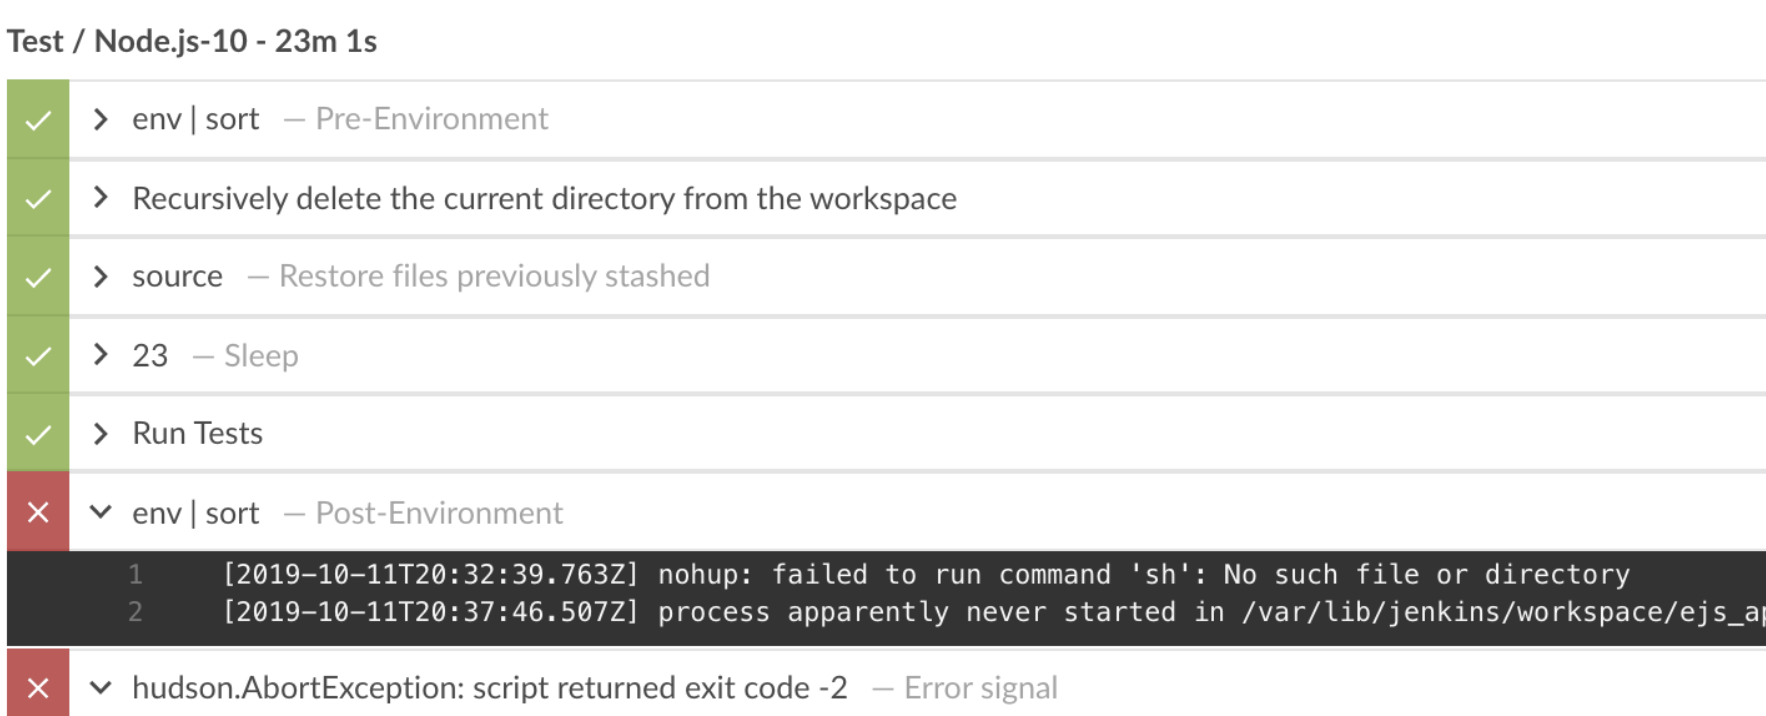 JENKINS-59668] Run wrapper process in the background fails